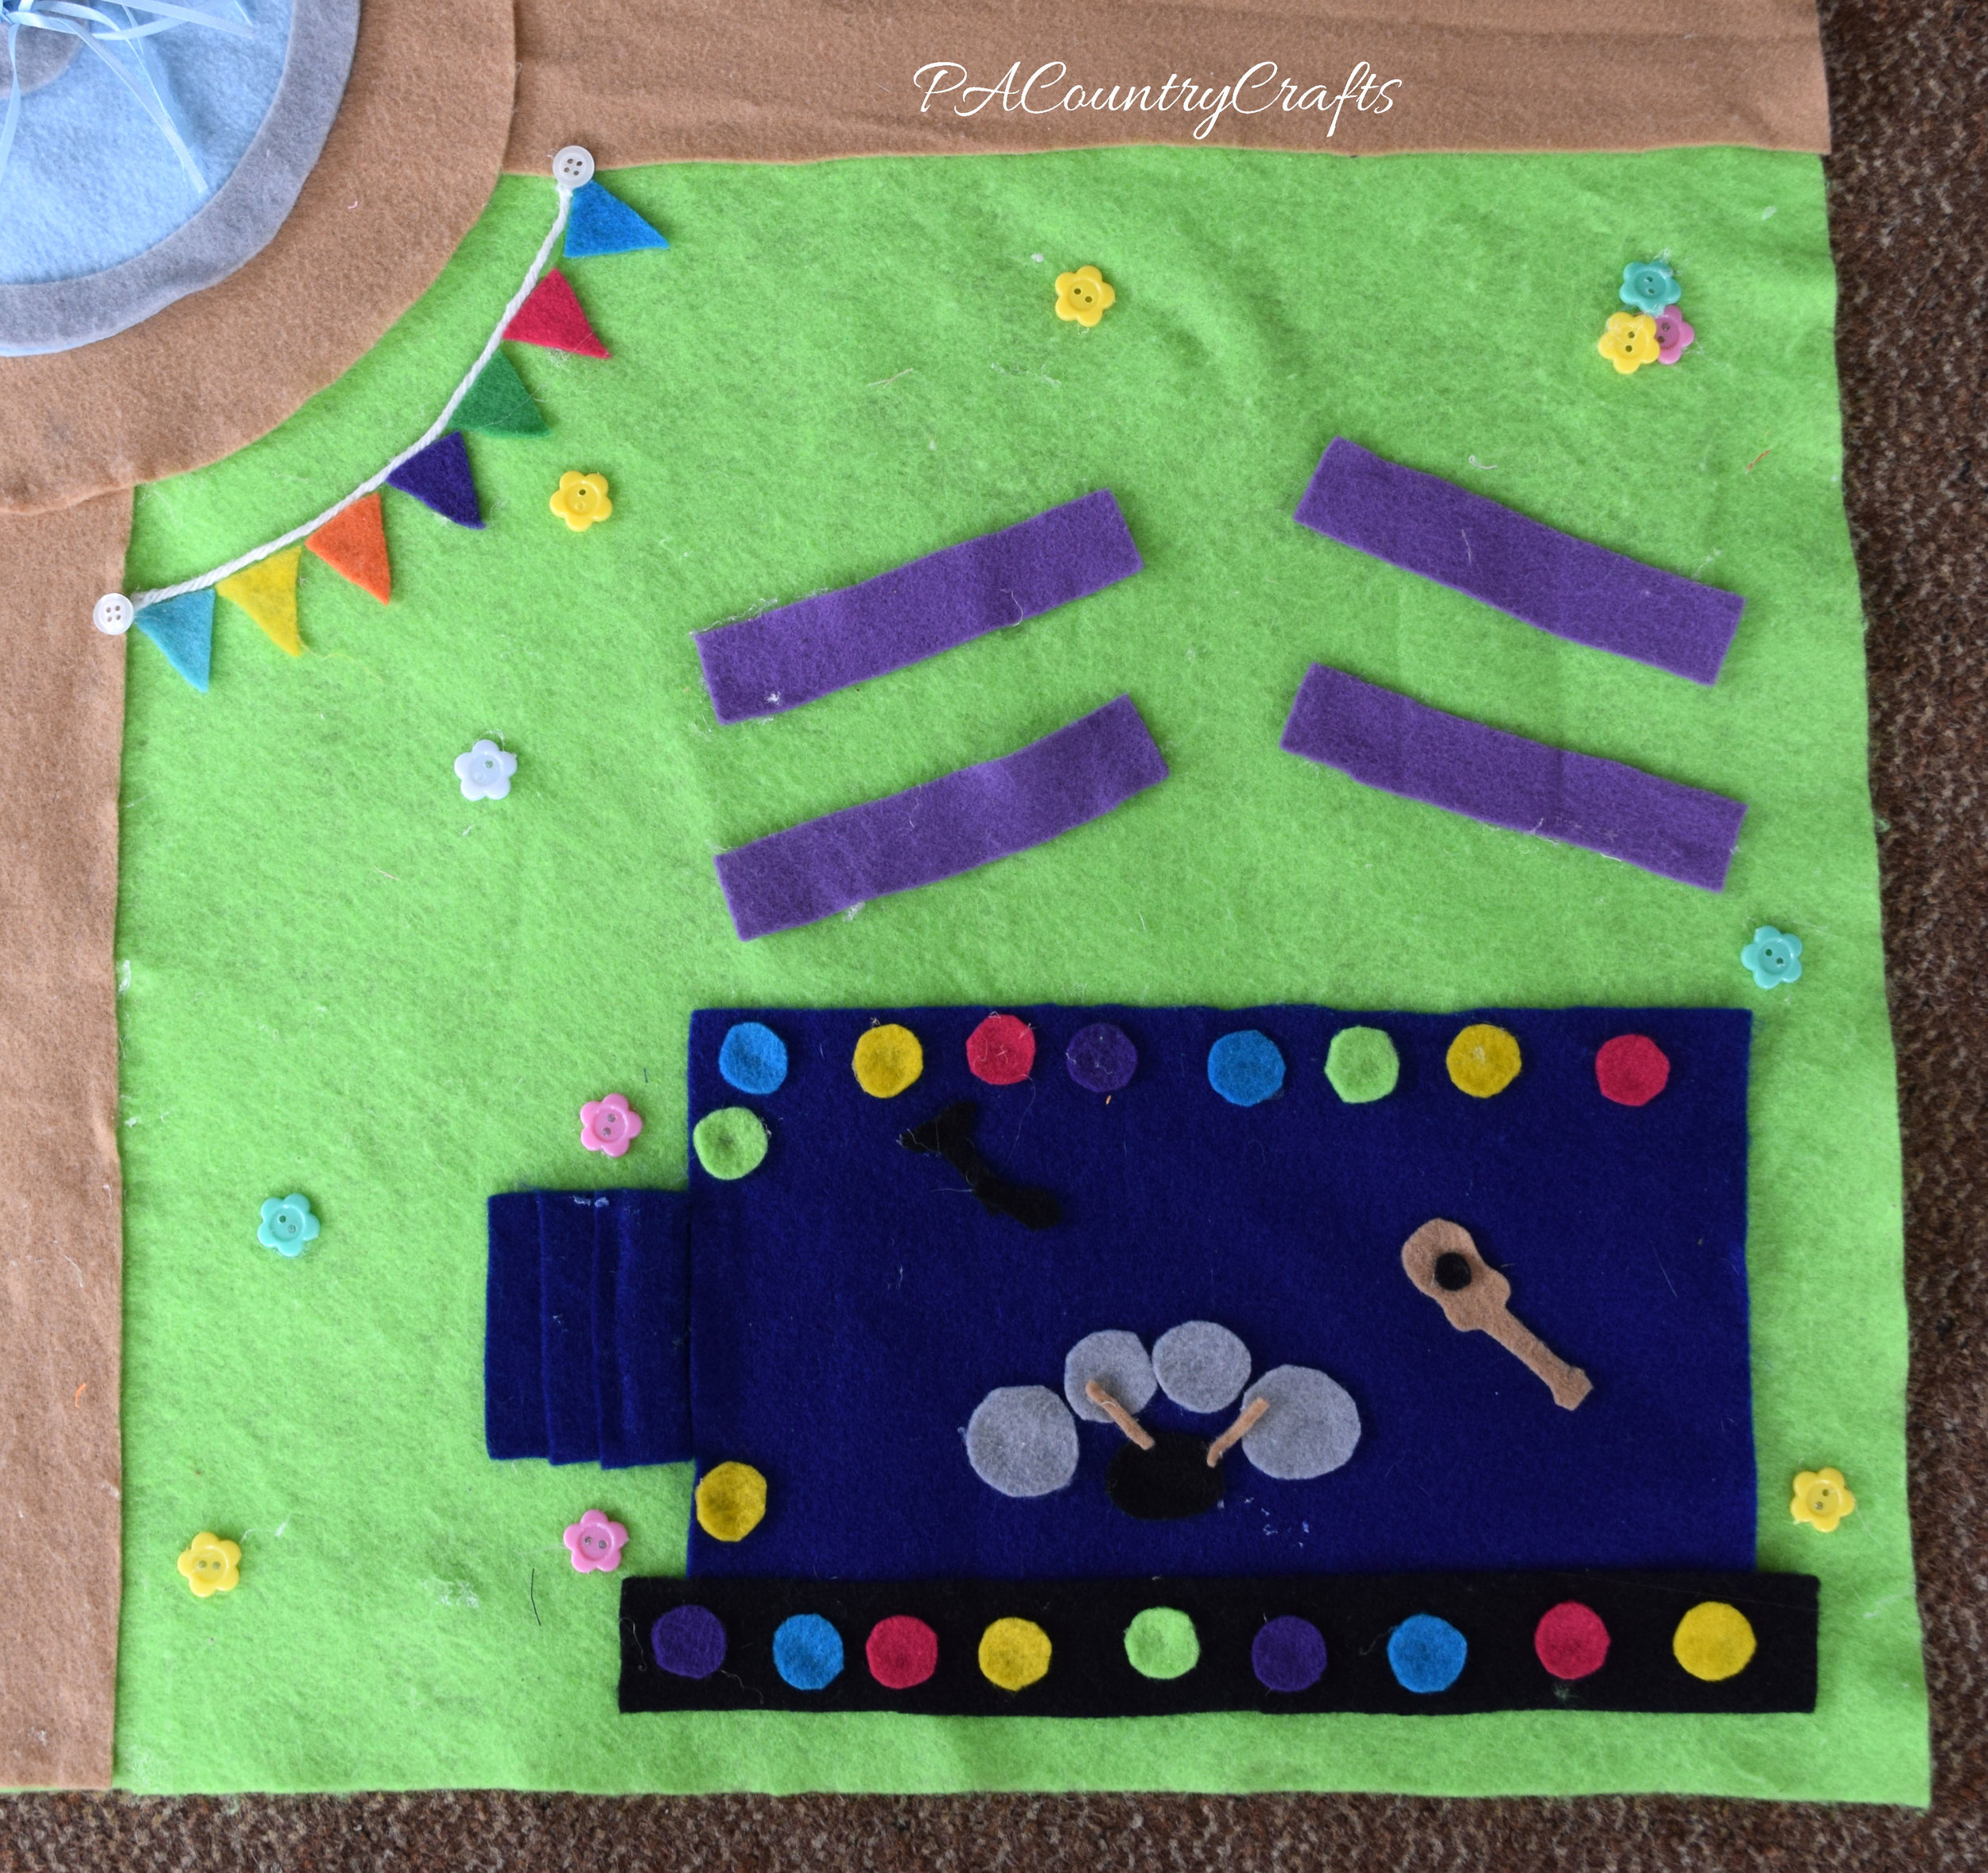 No-sew felt play mat with a concert stage